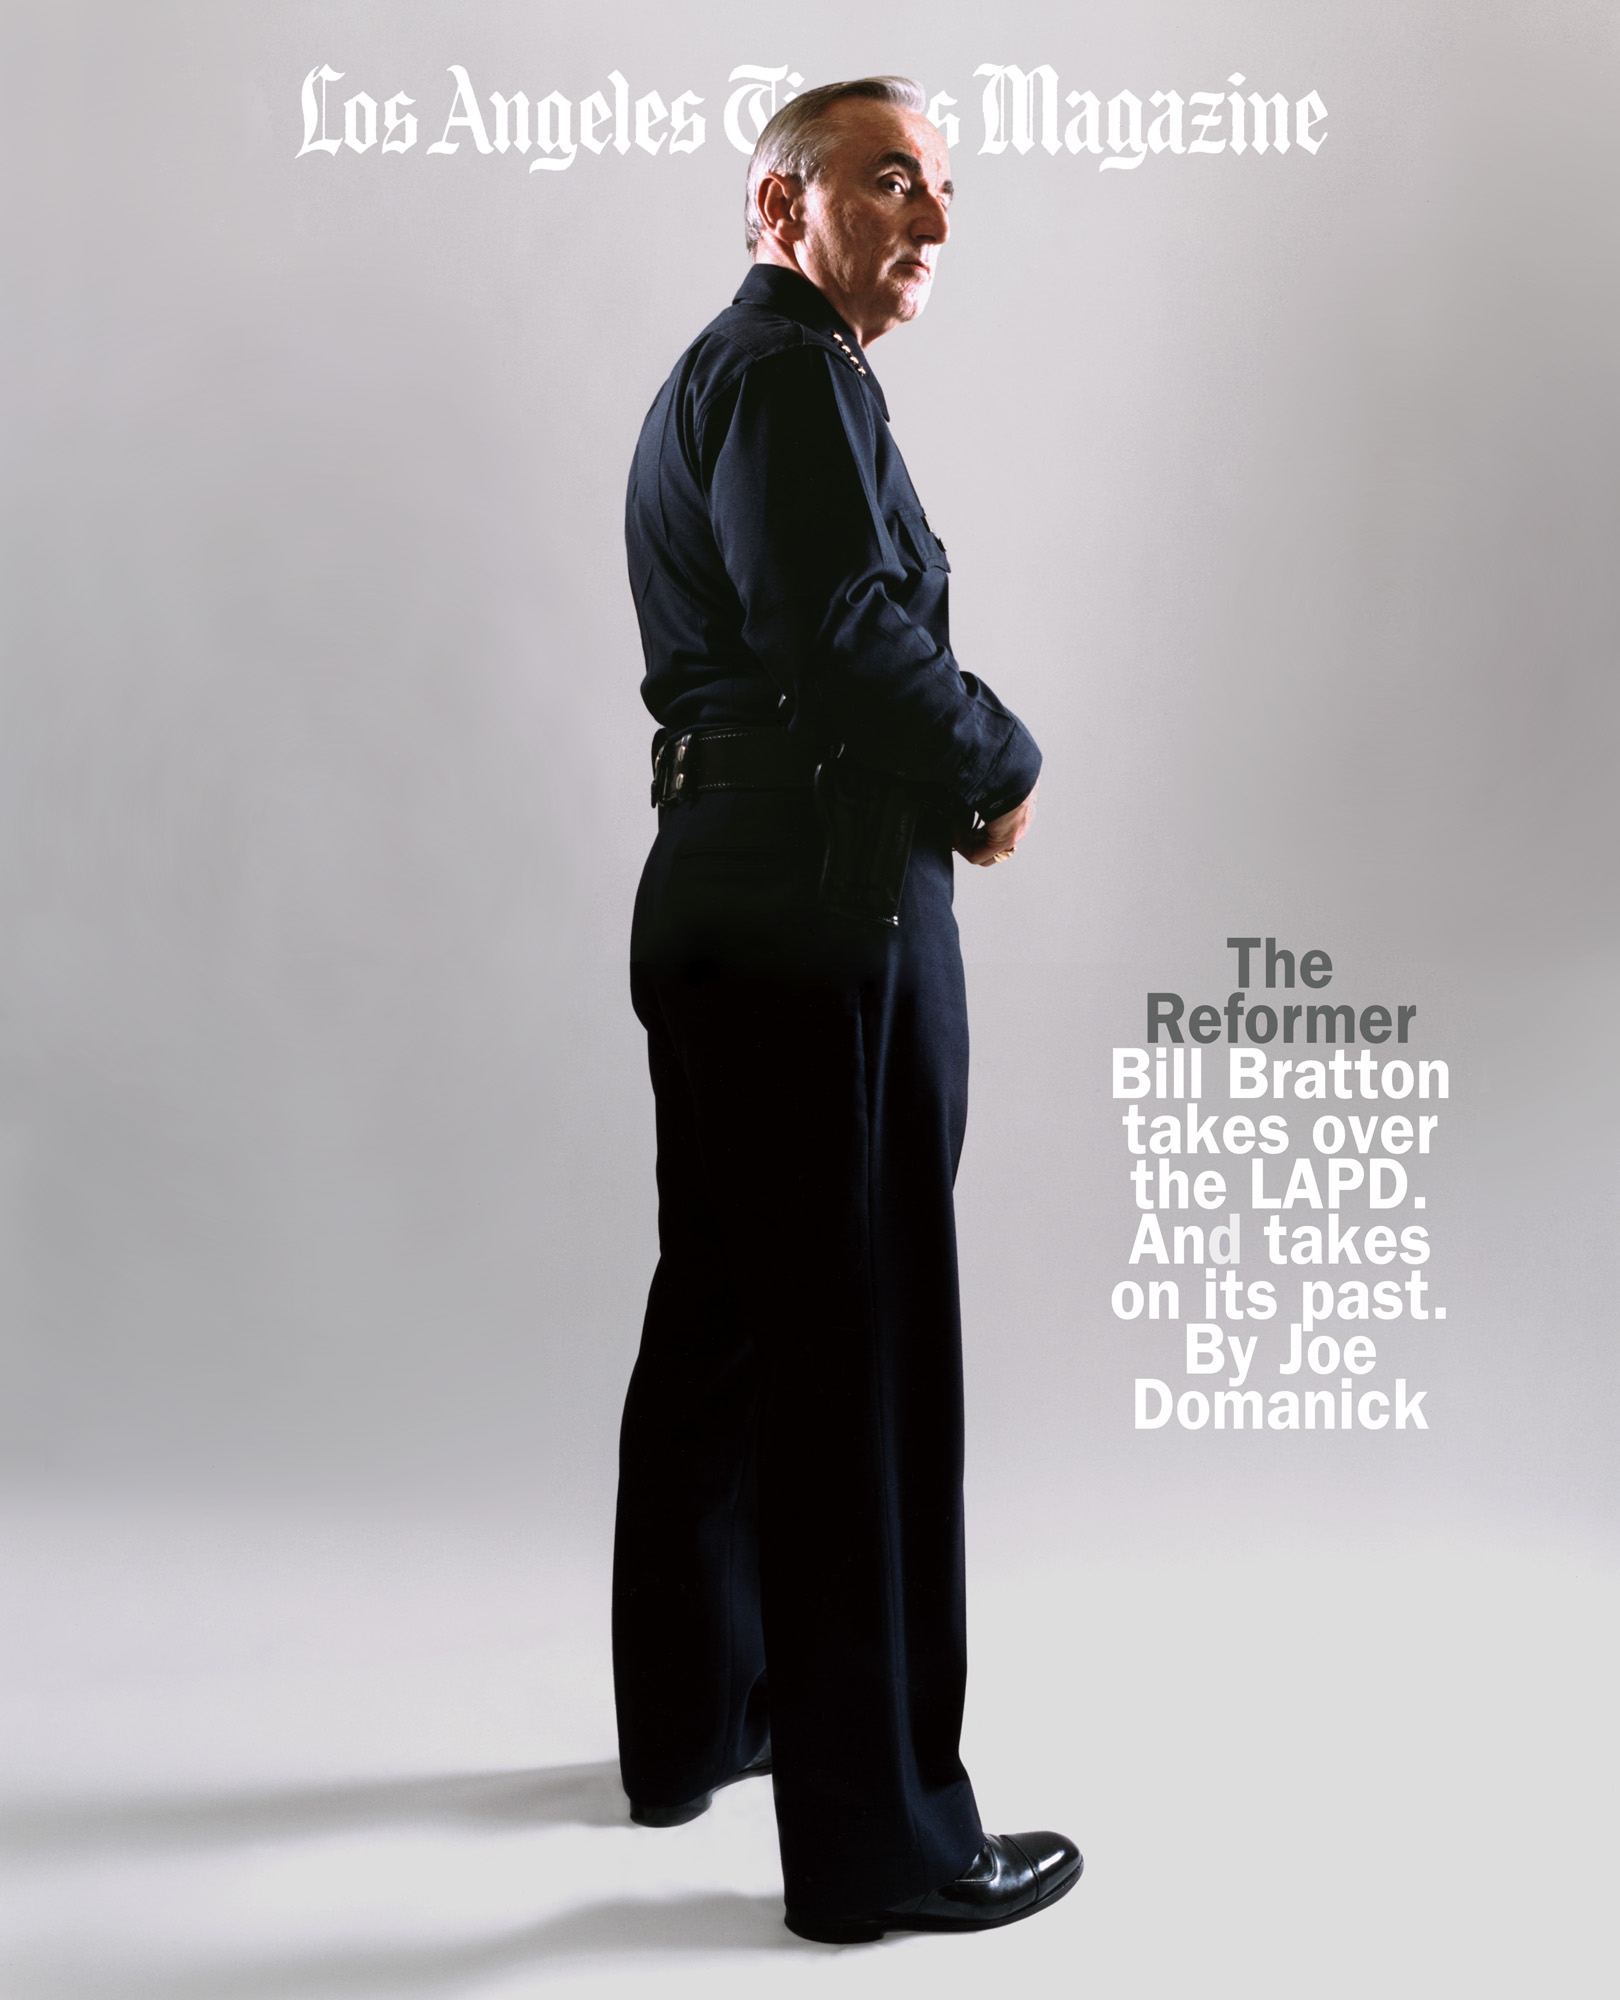 William Bratton,  Los Angeles Times Magazine